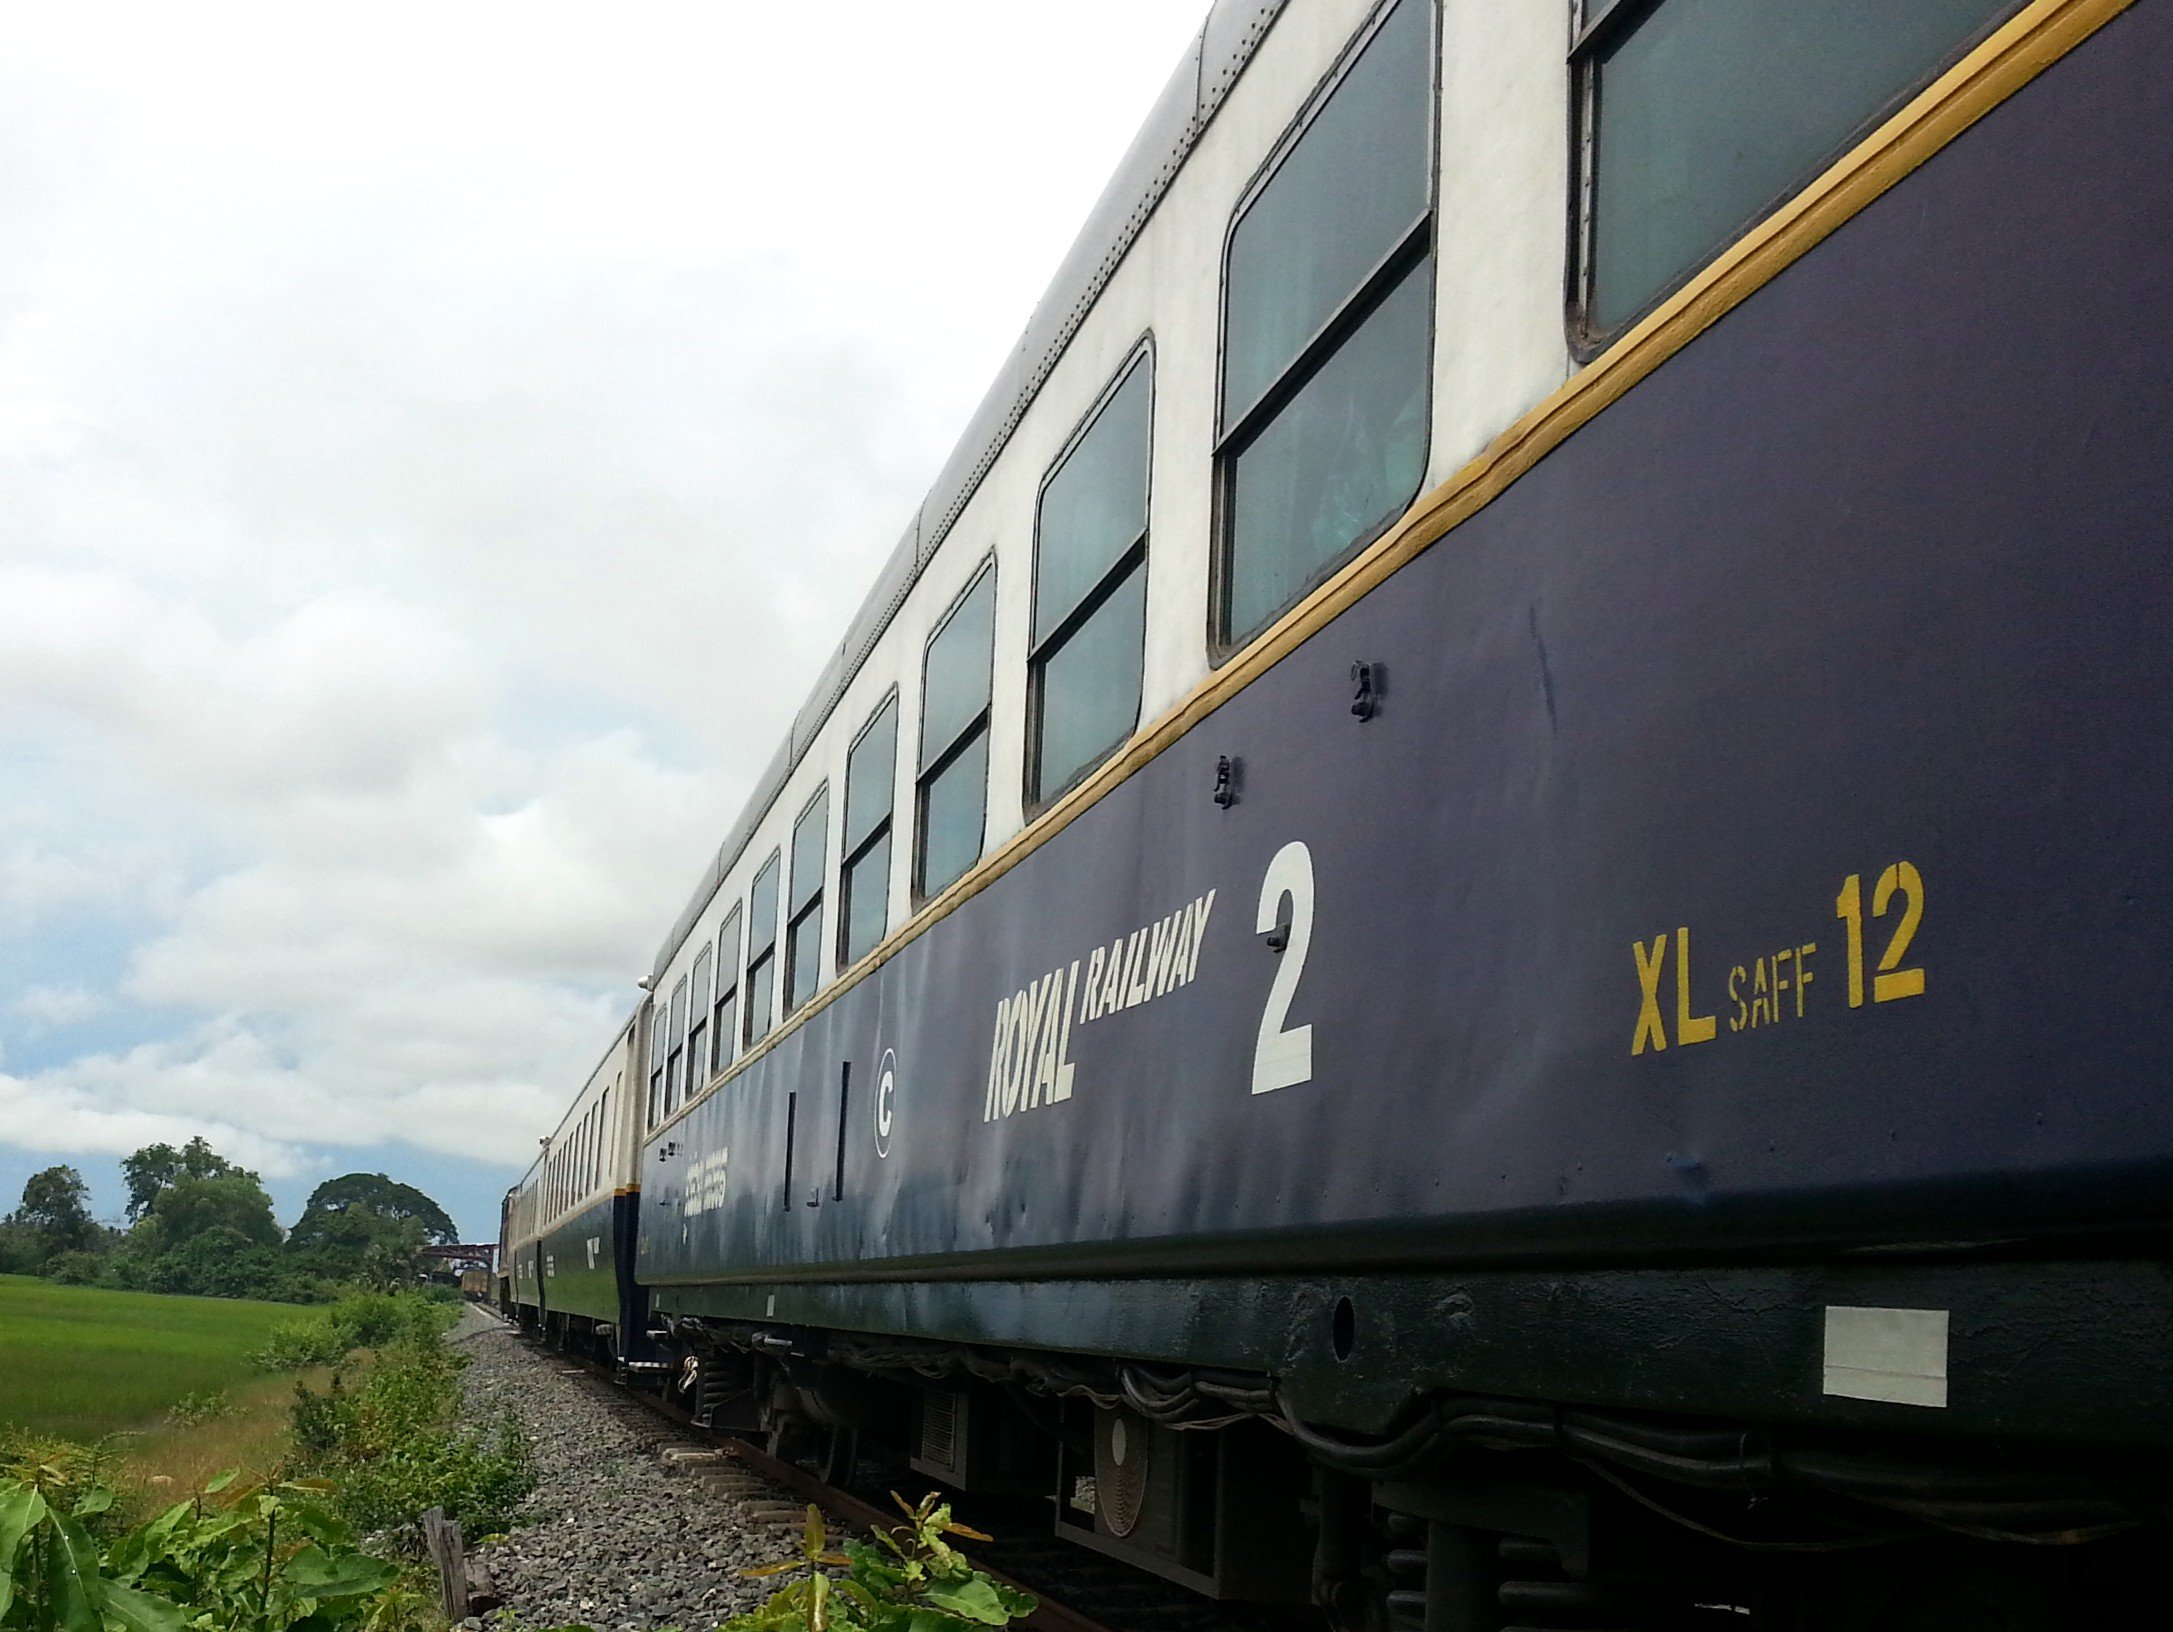 Sihanoukville to Phnom Penh Train